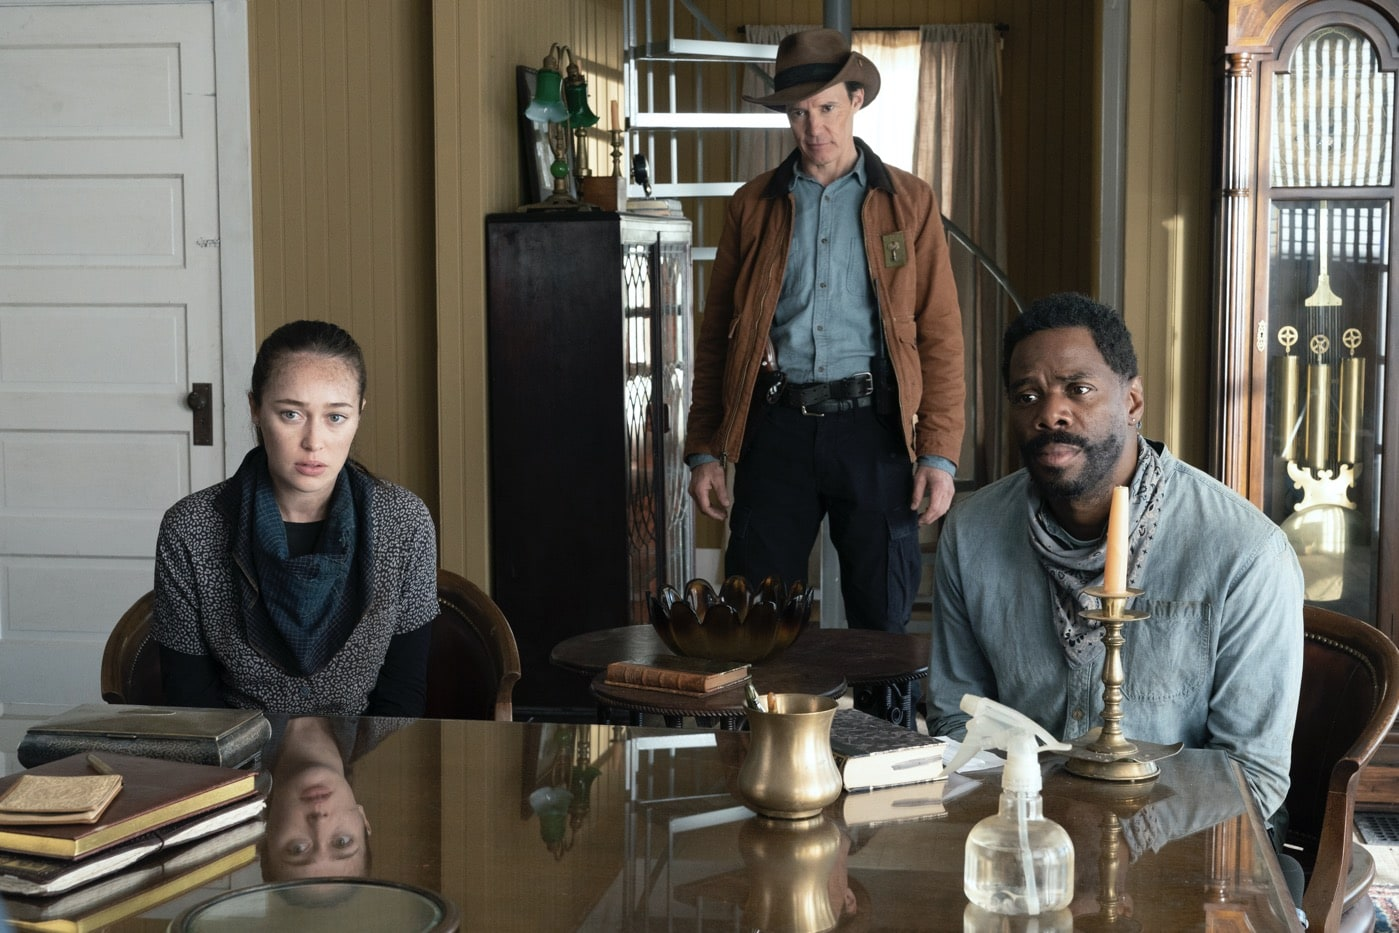 Colman Domingo as Victor Strand, Alycia Debnam-Carey as Alicia Clark, Craig Nigh as Hill - Fear the Walking Dead _ Season 6, Episode 2 - Photo Credit: Ryan Green/AMC